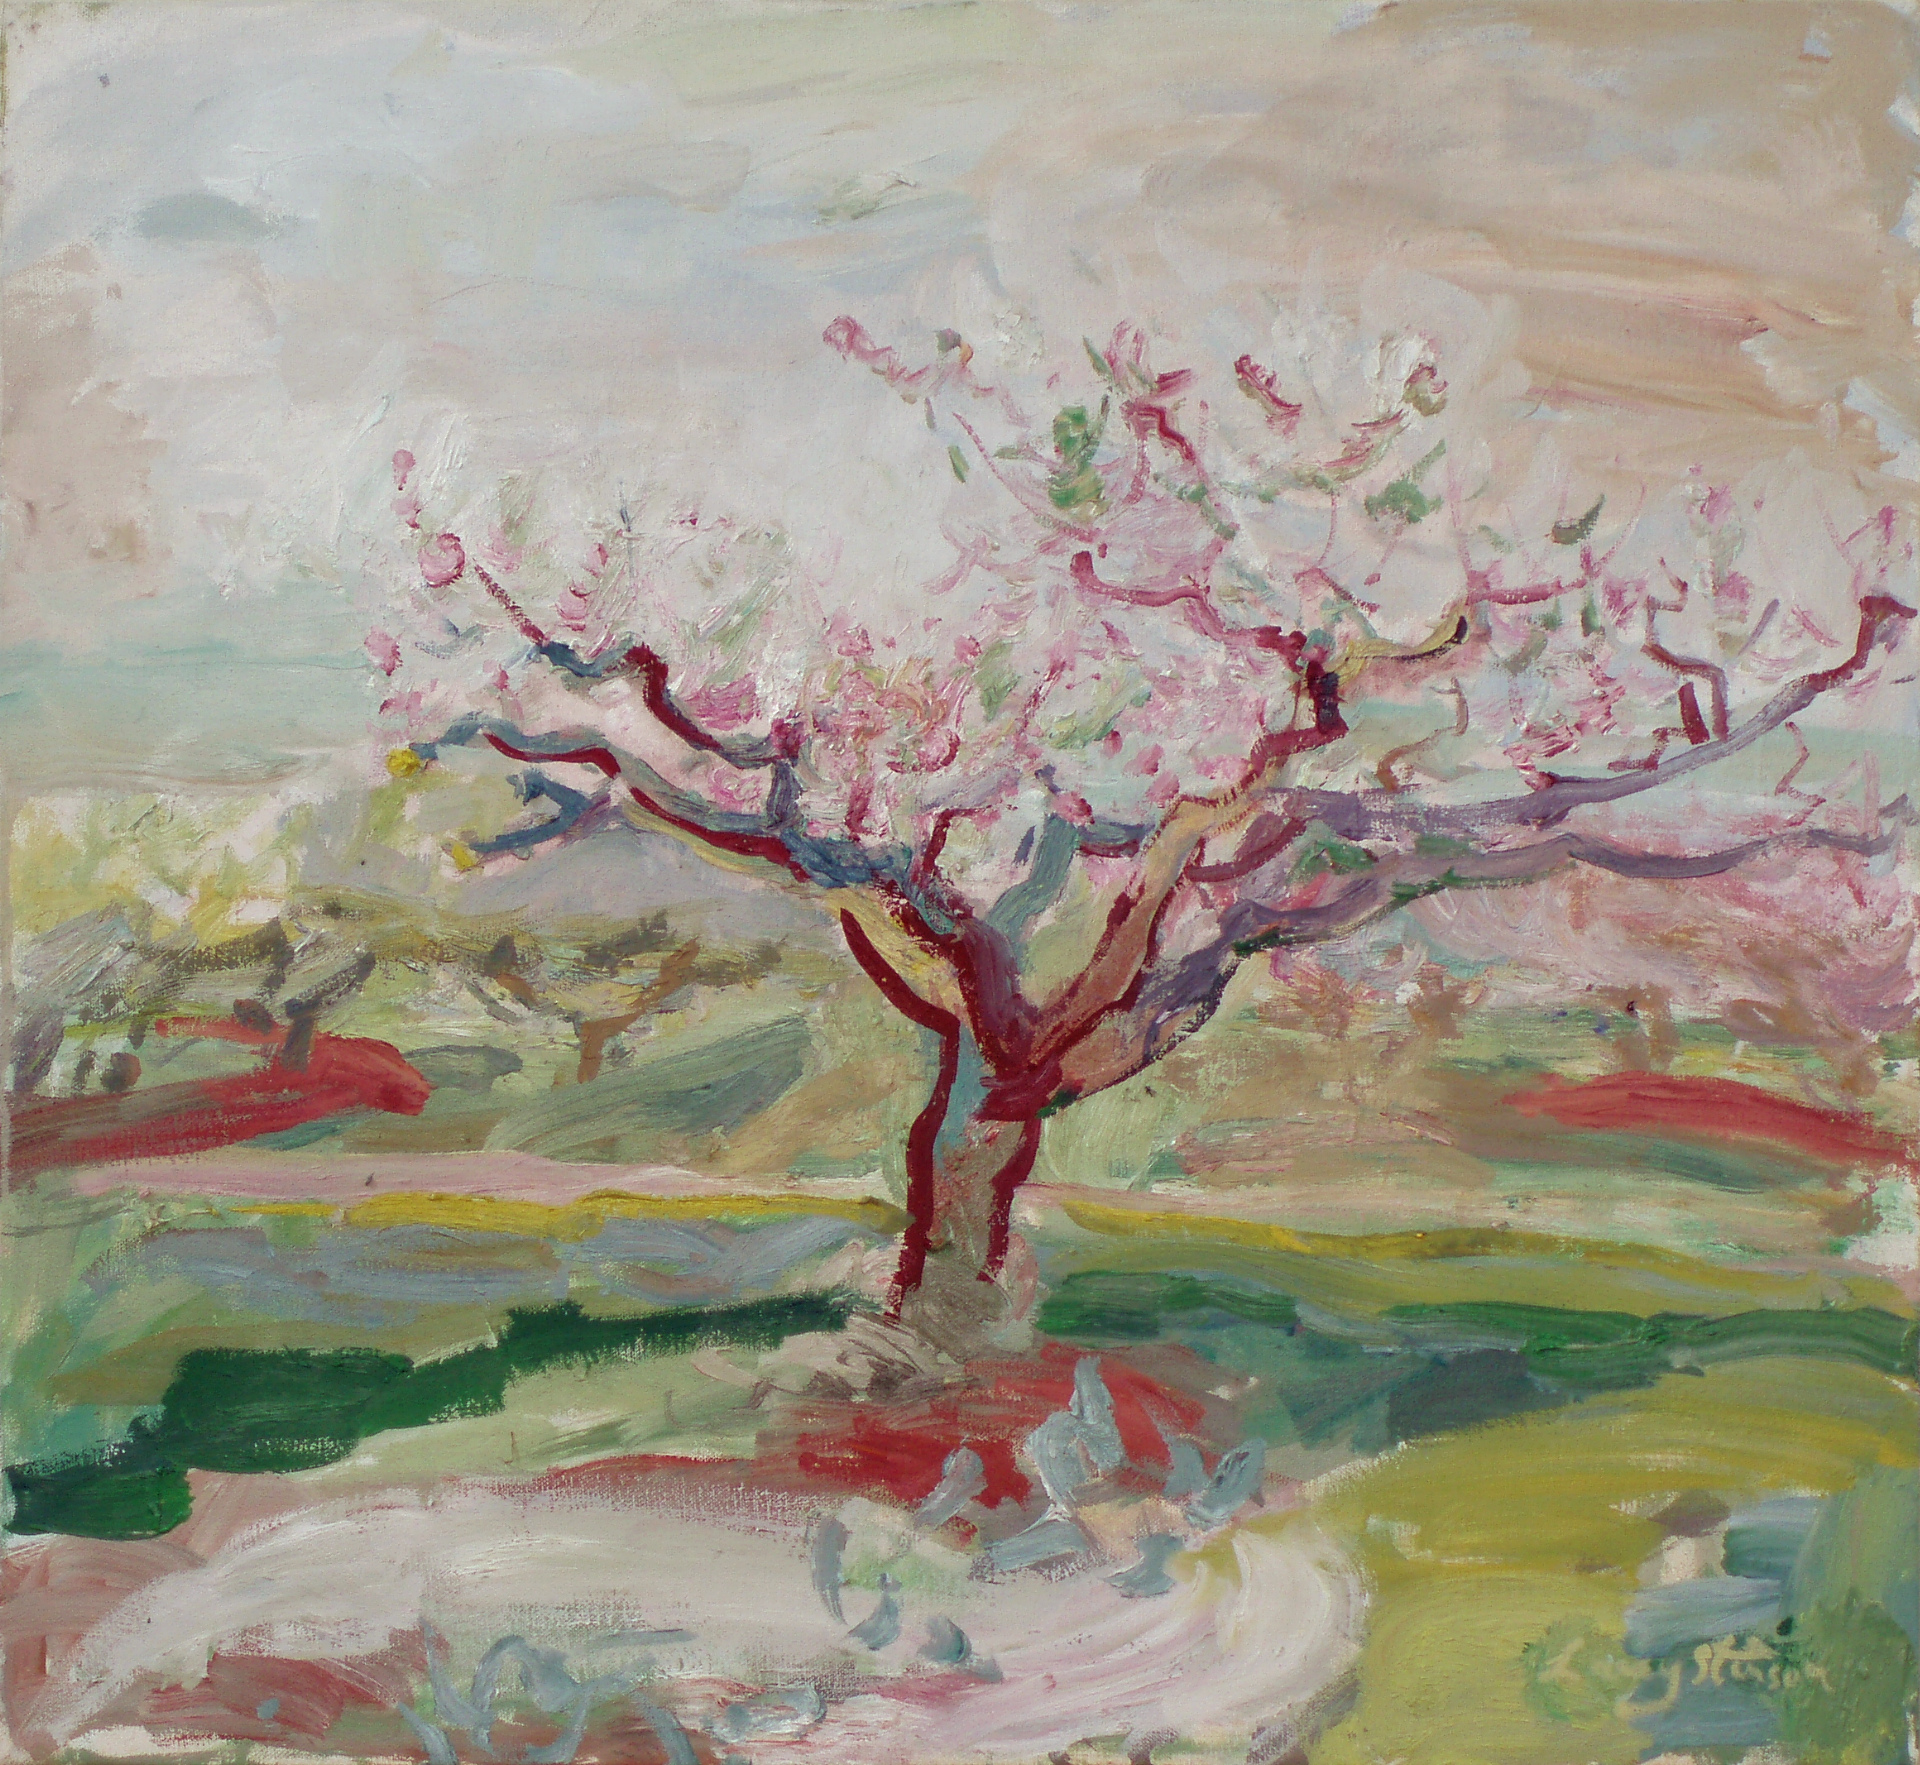 Peach Tree in Bloom, sketch, by Lacey Stinson